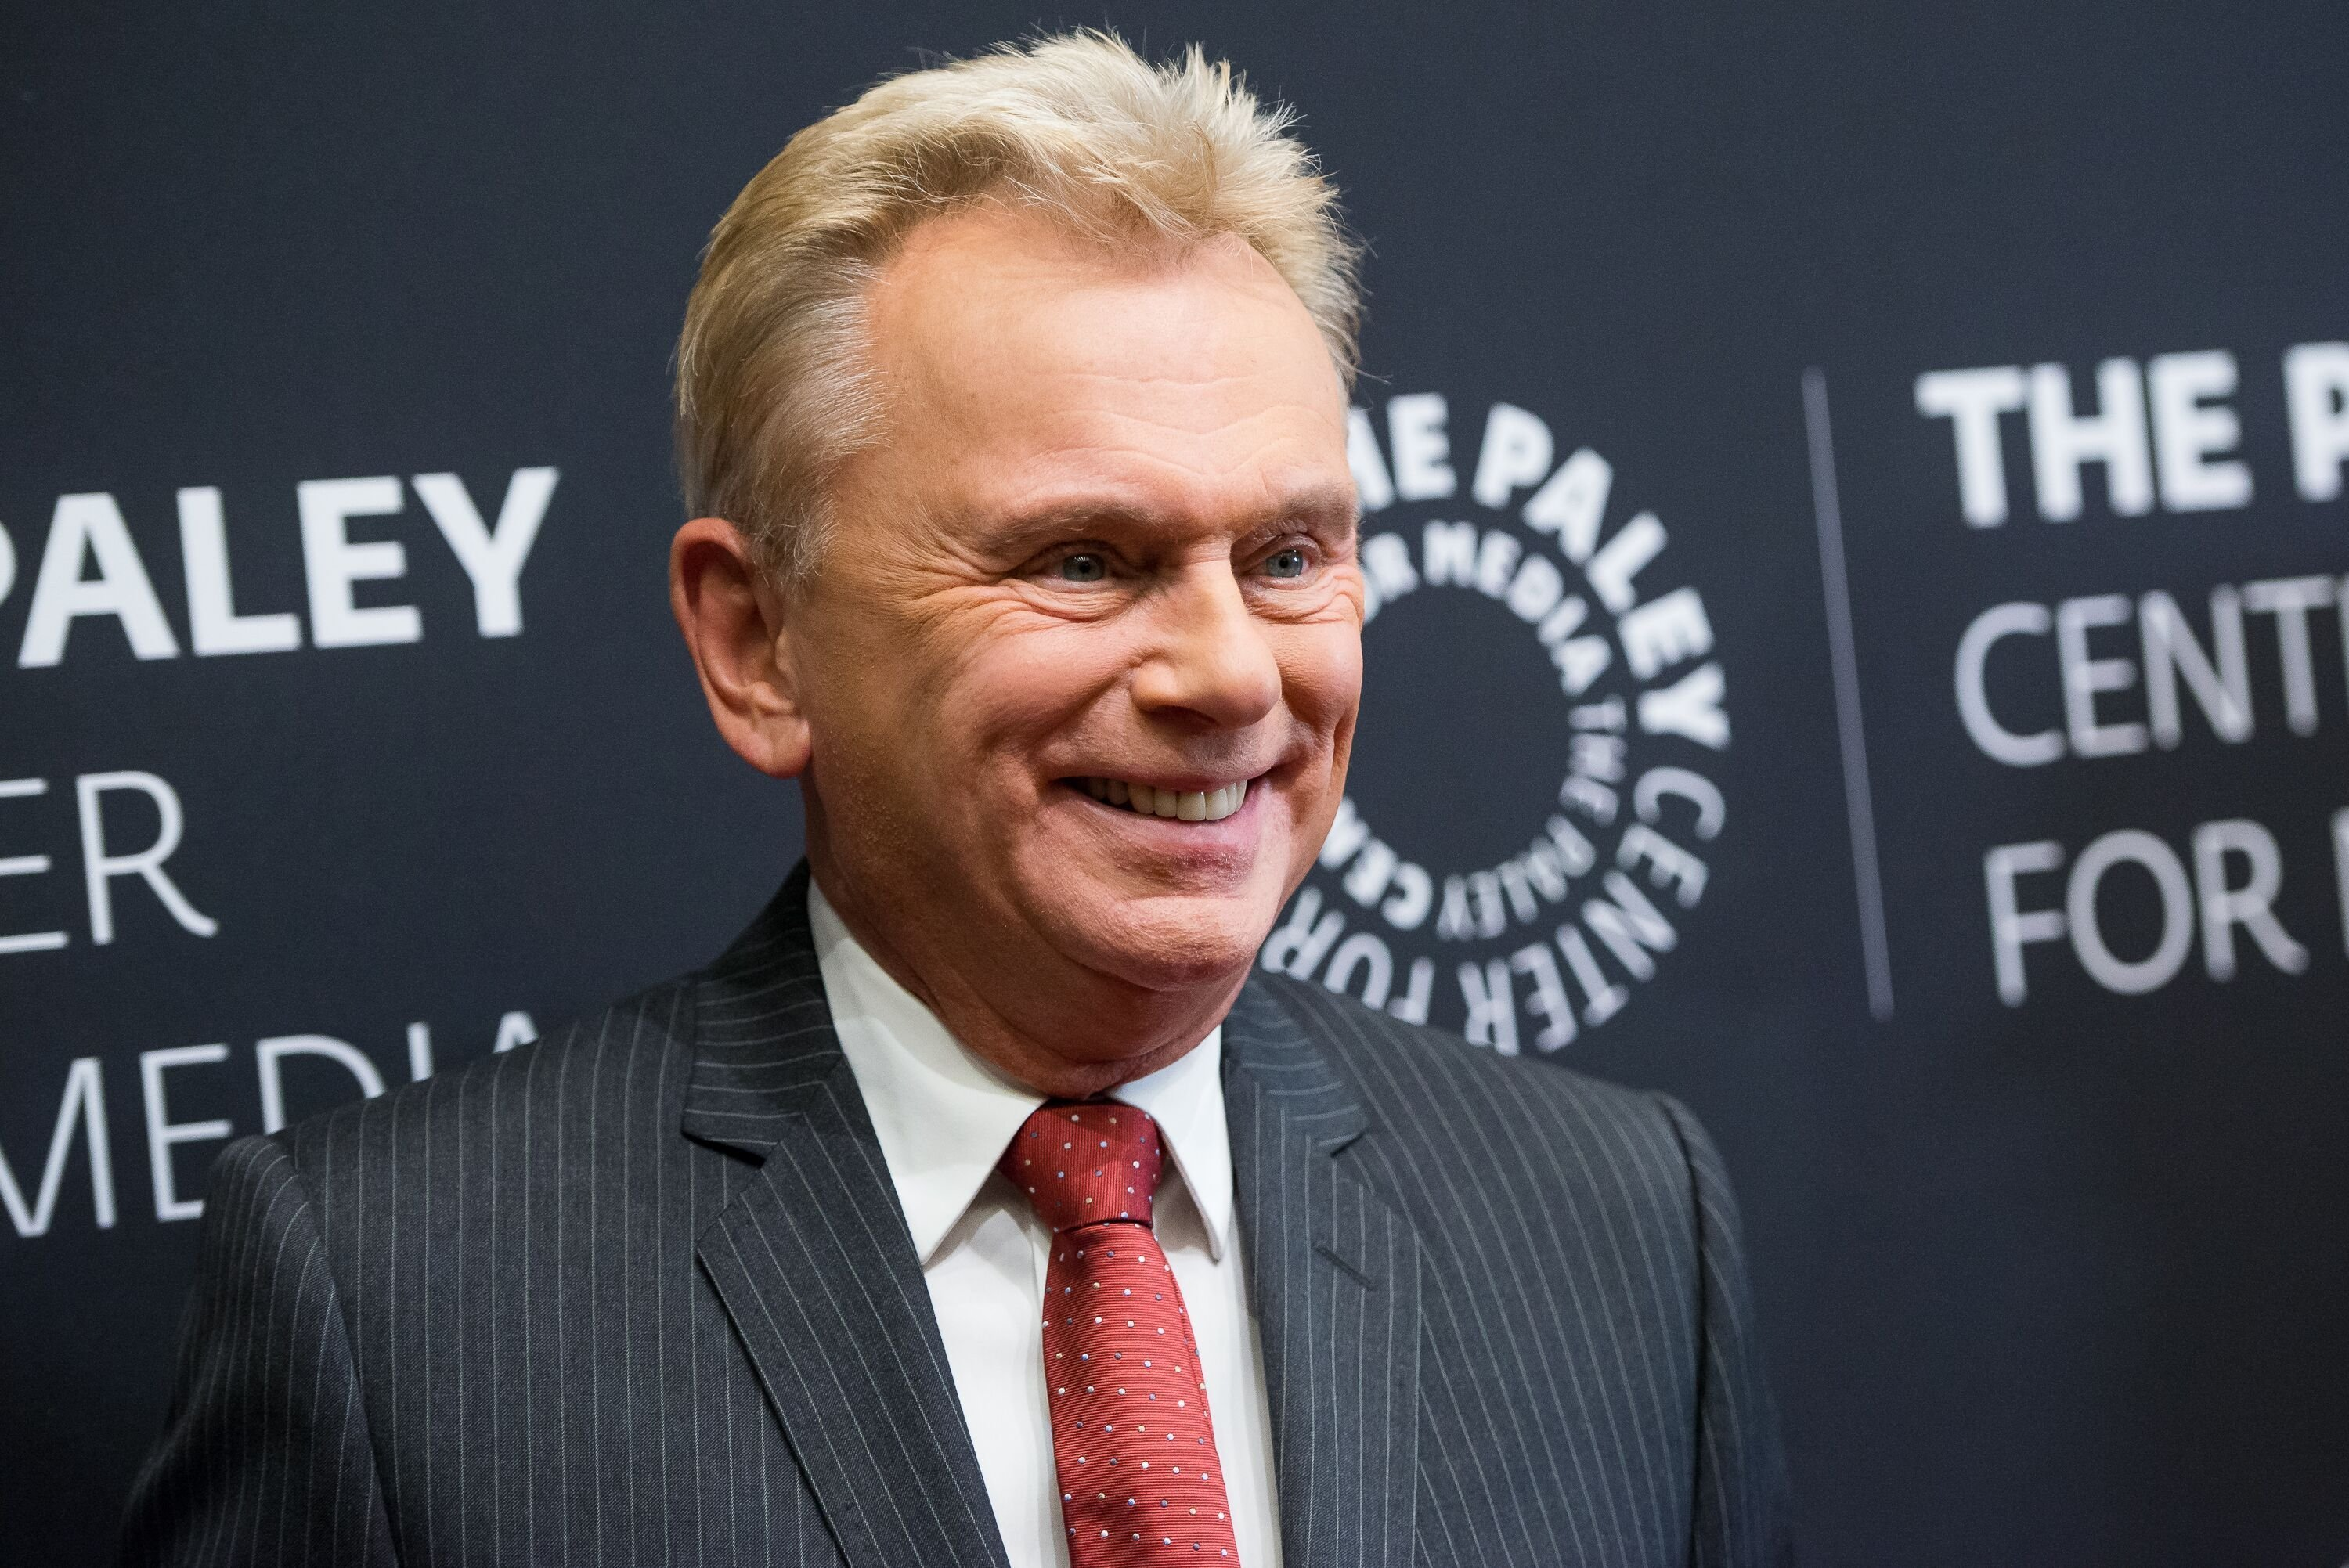 Pat Sajak at The Paley Center For Media Presents Wheel Of Fortune 35 Years As America's Game on November 15, 2017, in New York City | Photo: Mike Pont/Getty Images